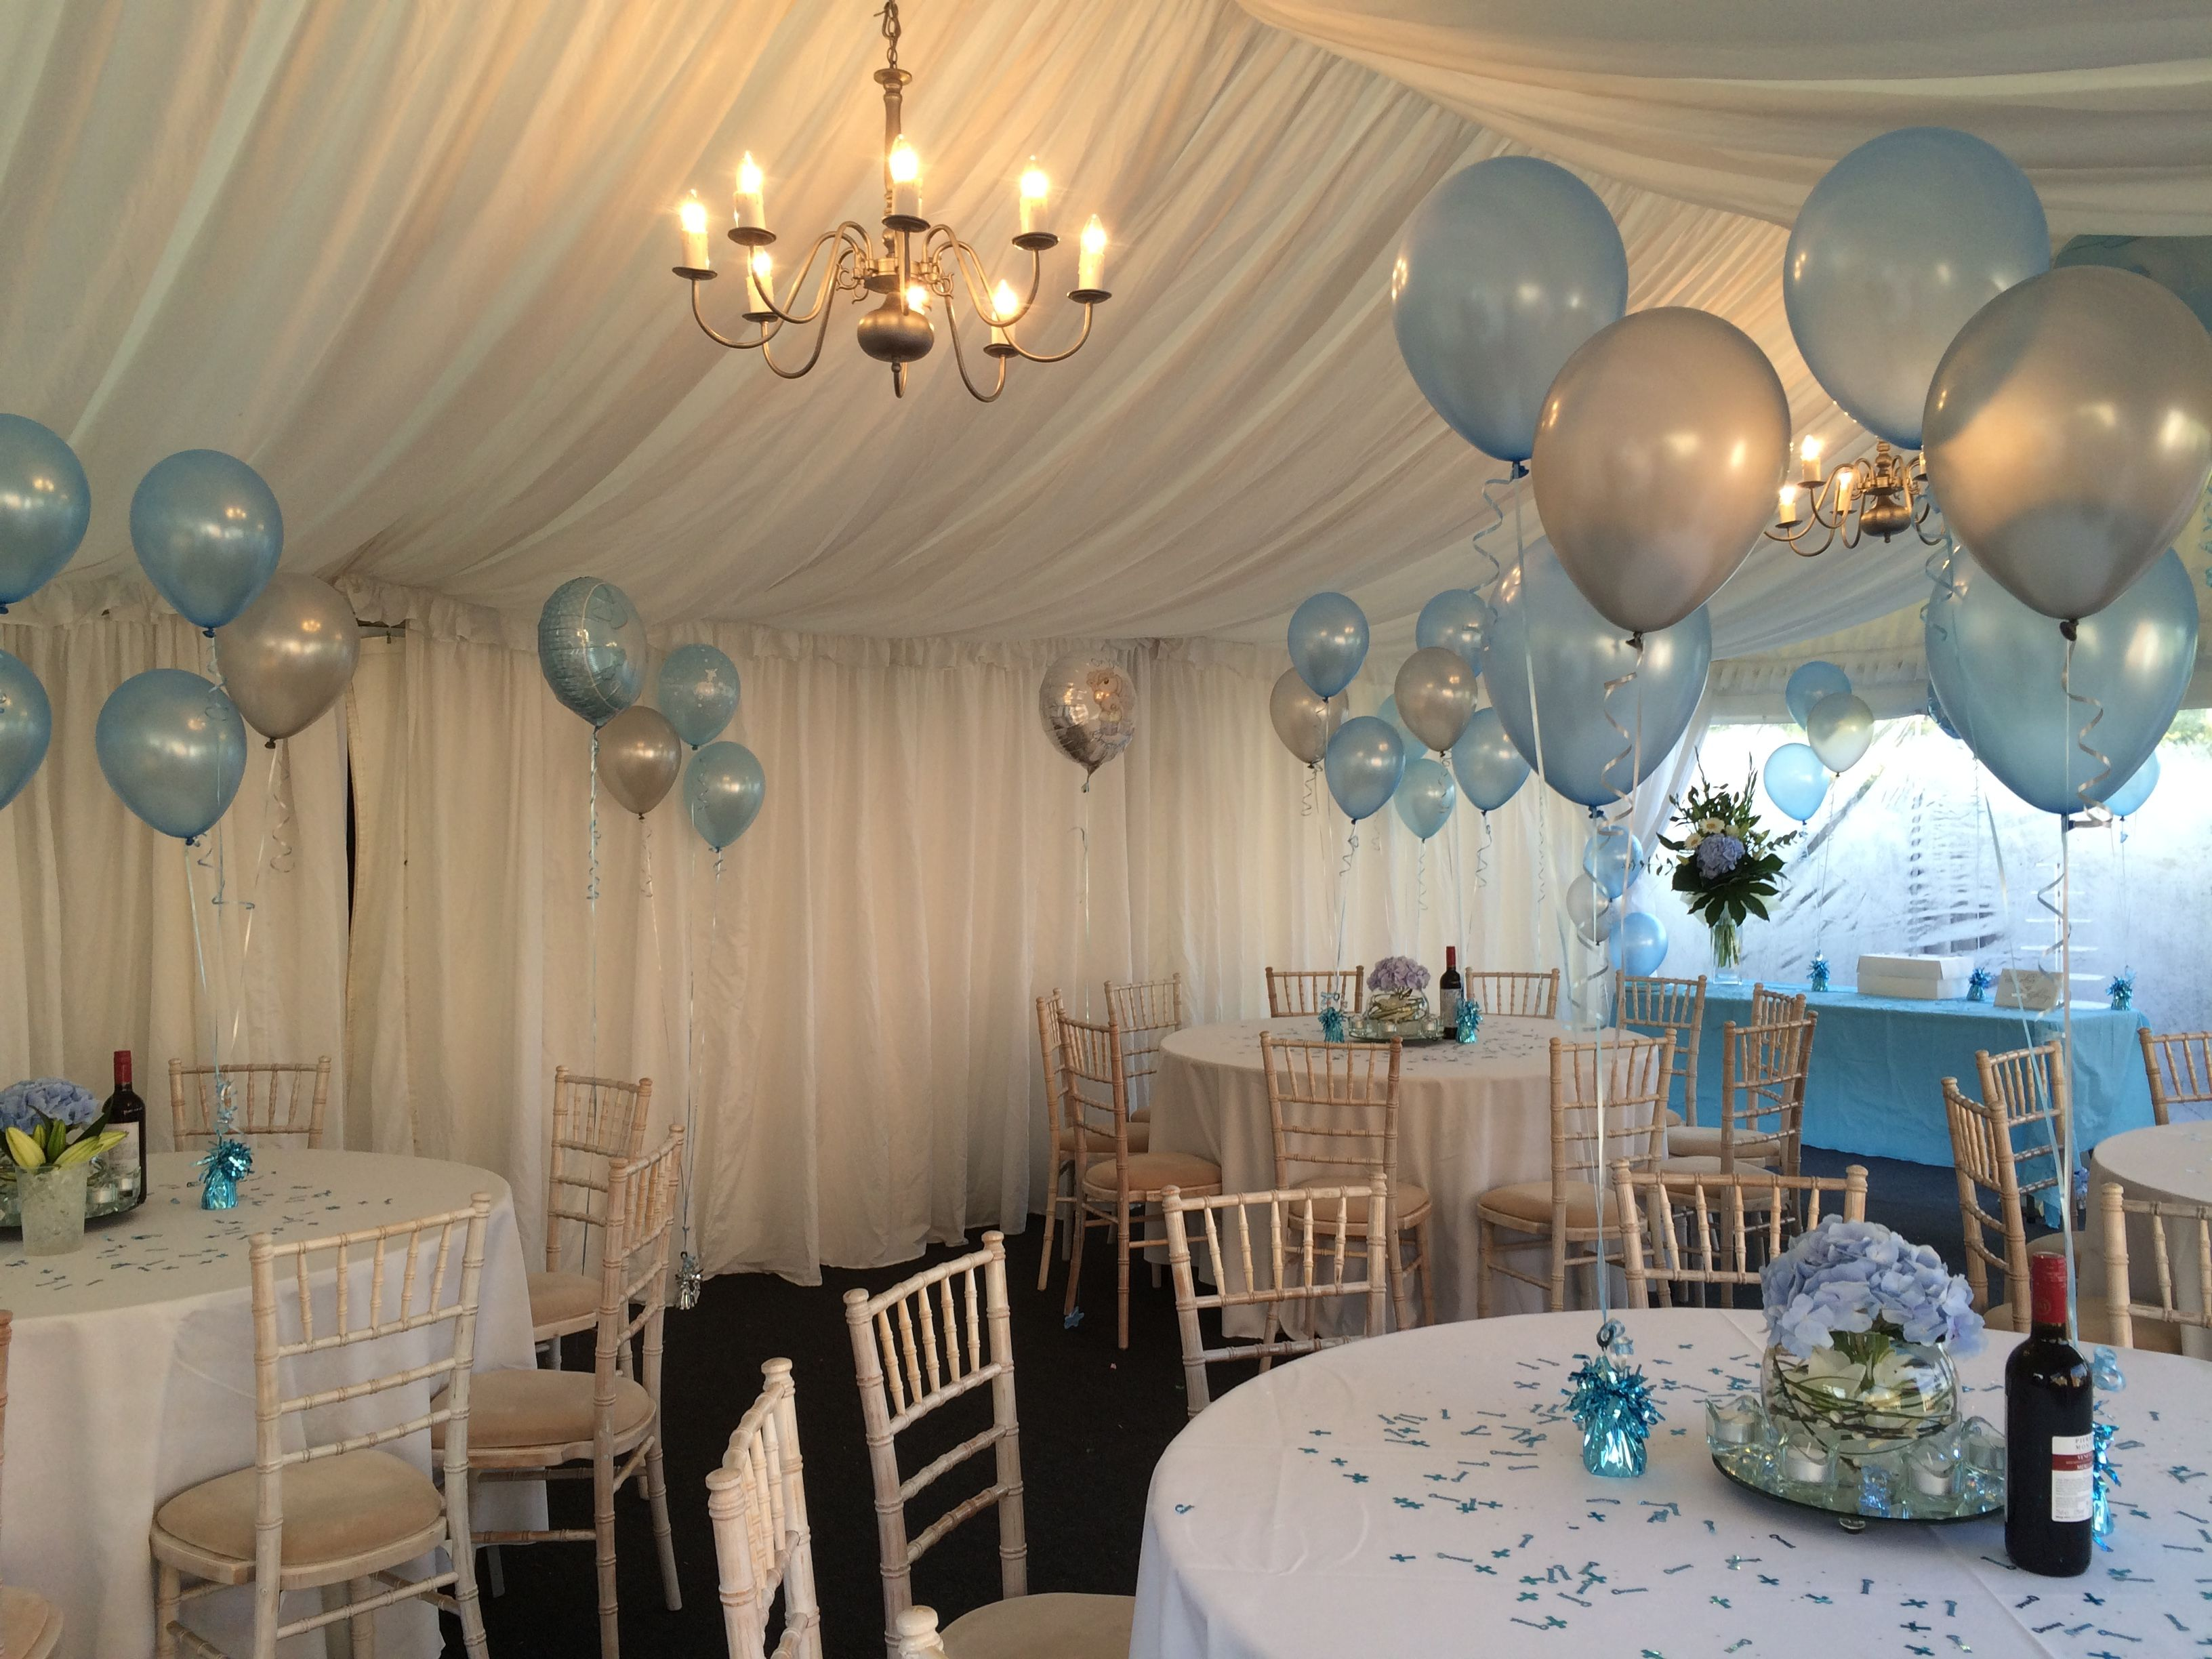 Complementary Floor And Table Balloon Decorations All Ready